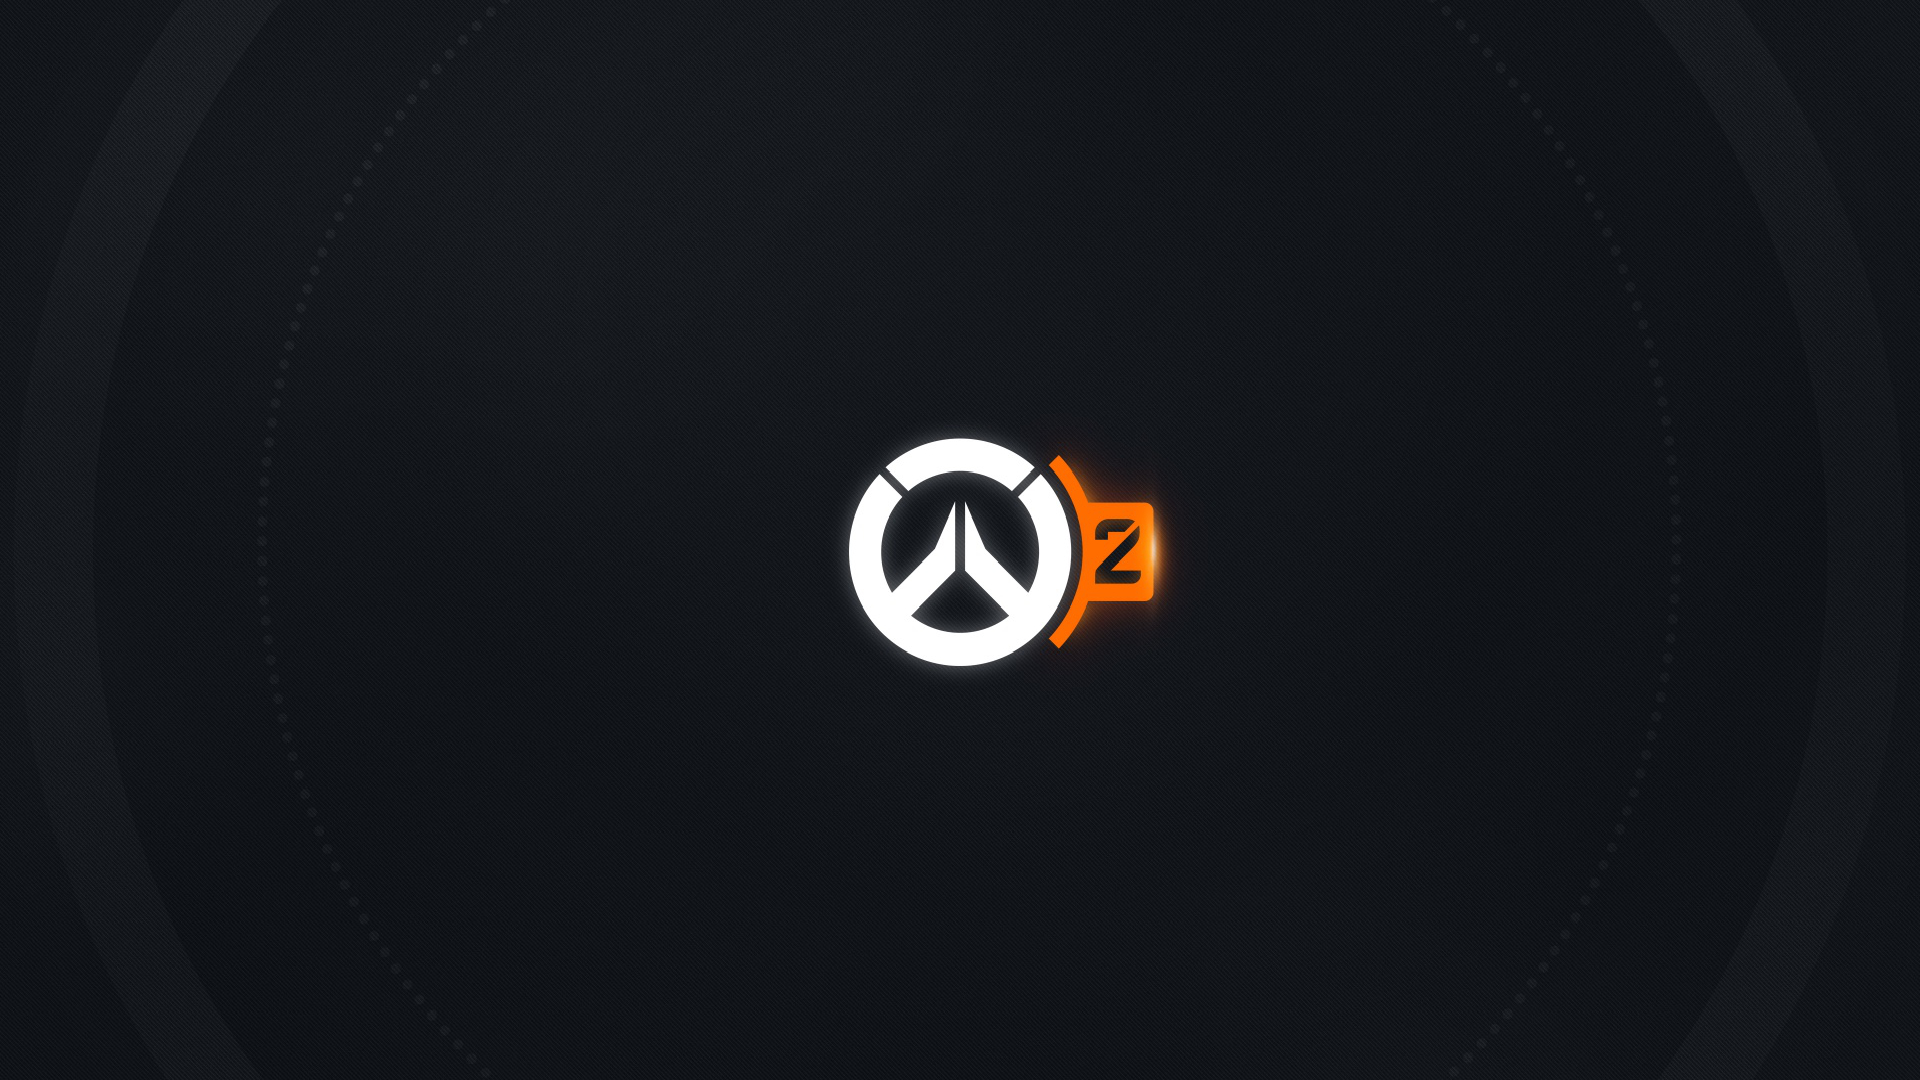 Overwatch 2 wallpaper